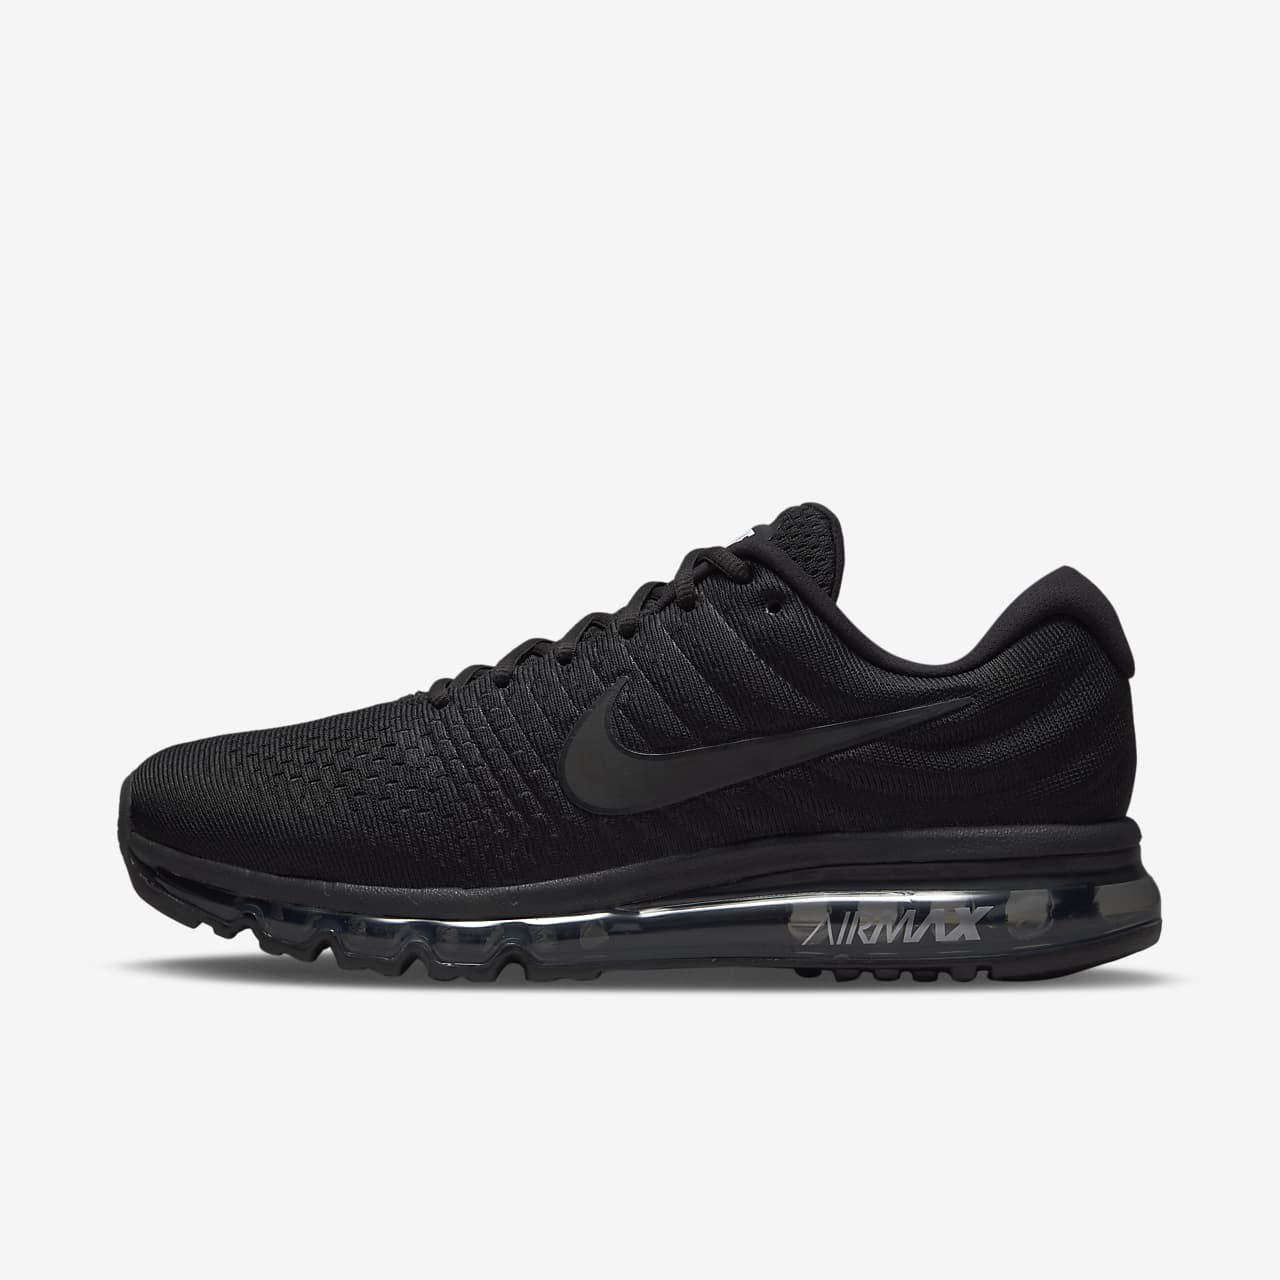 nike air max 2016 mens running shoe $190 000